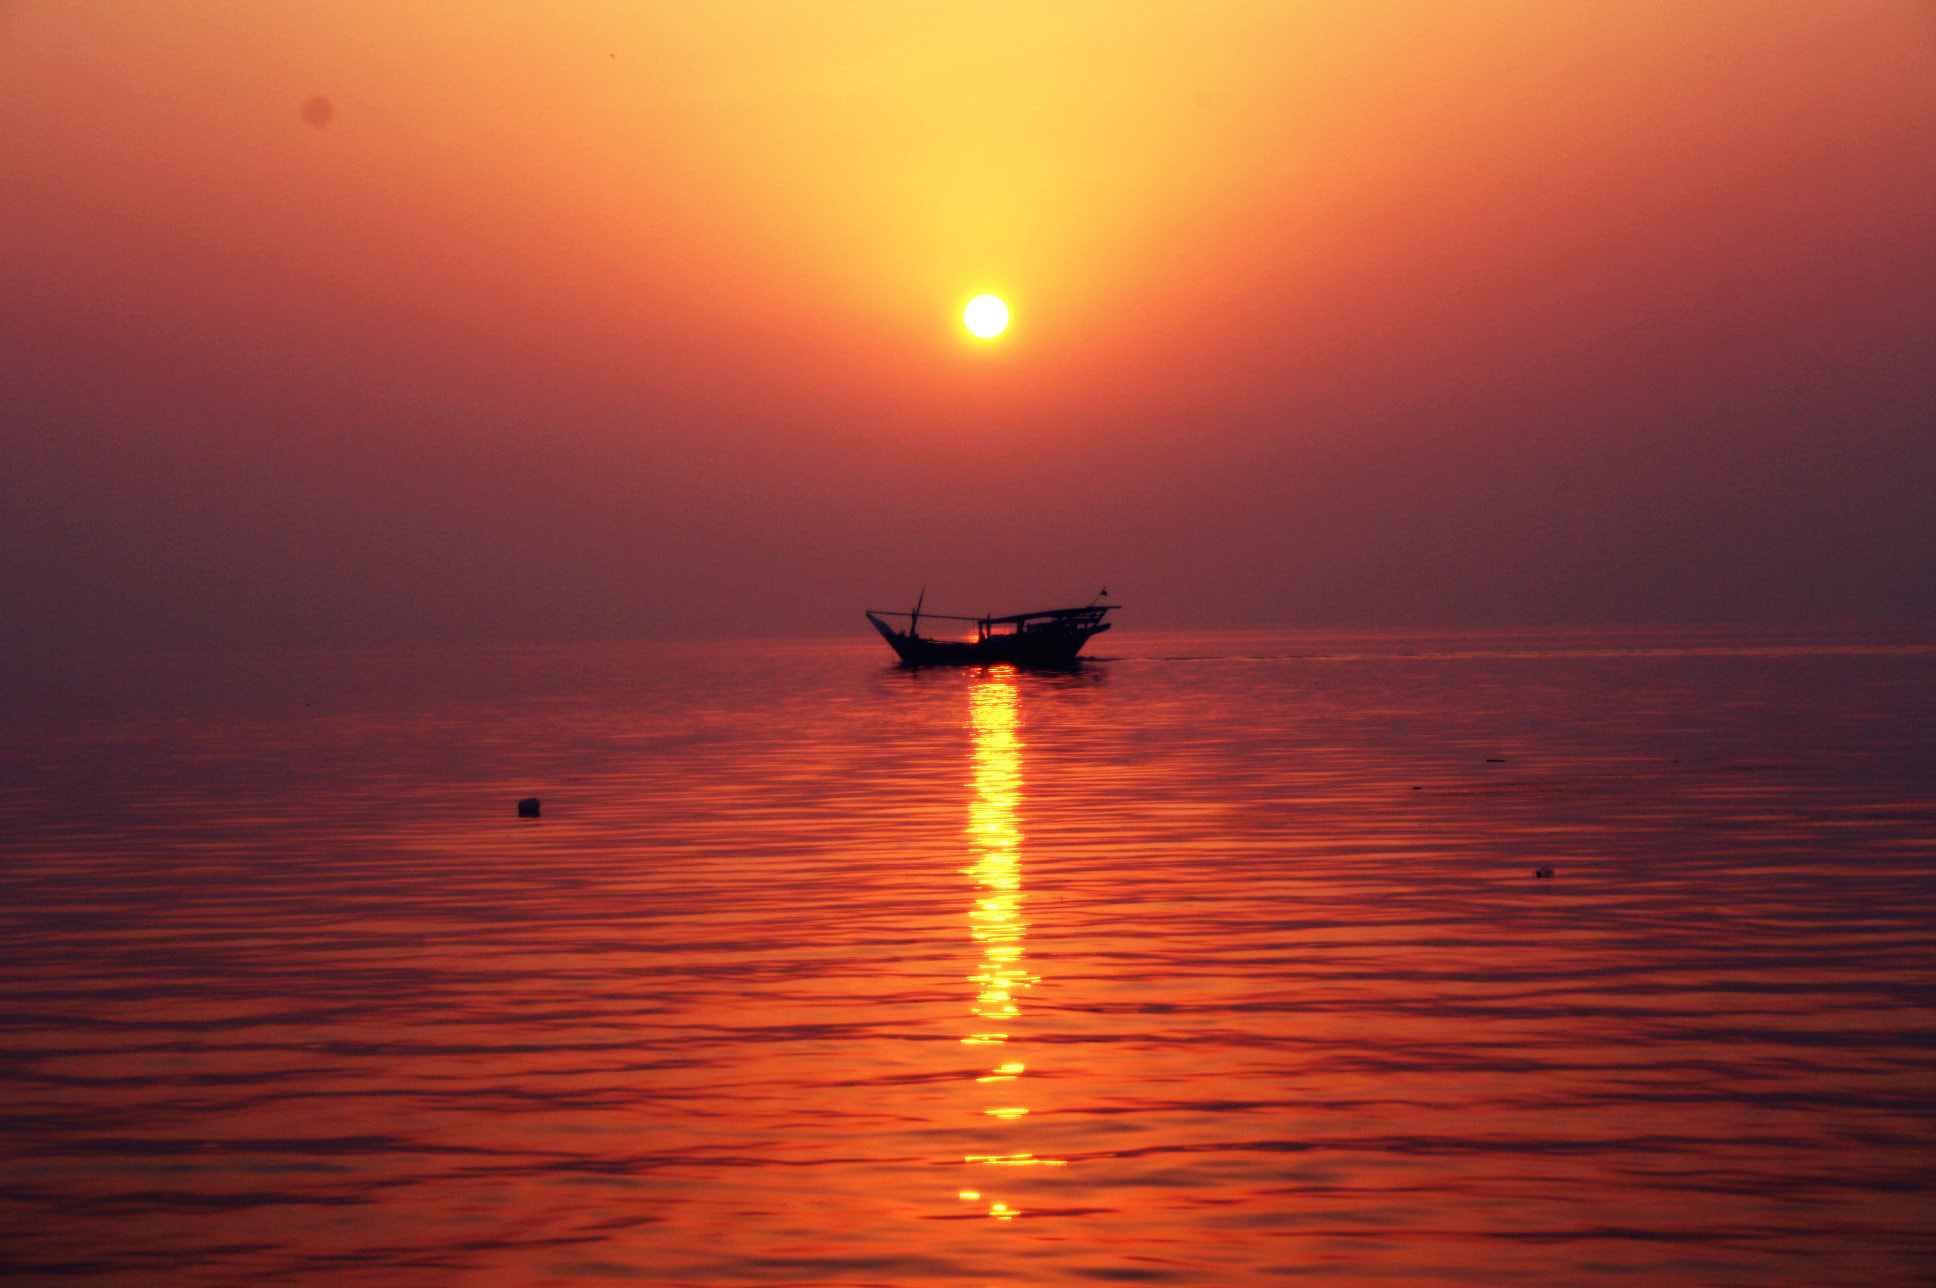 Photograph Morning boat ride by Muhannad AlSomali on 500px